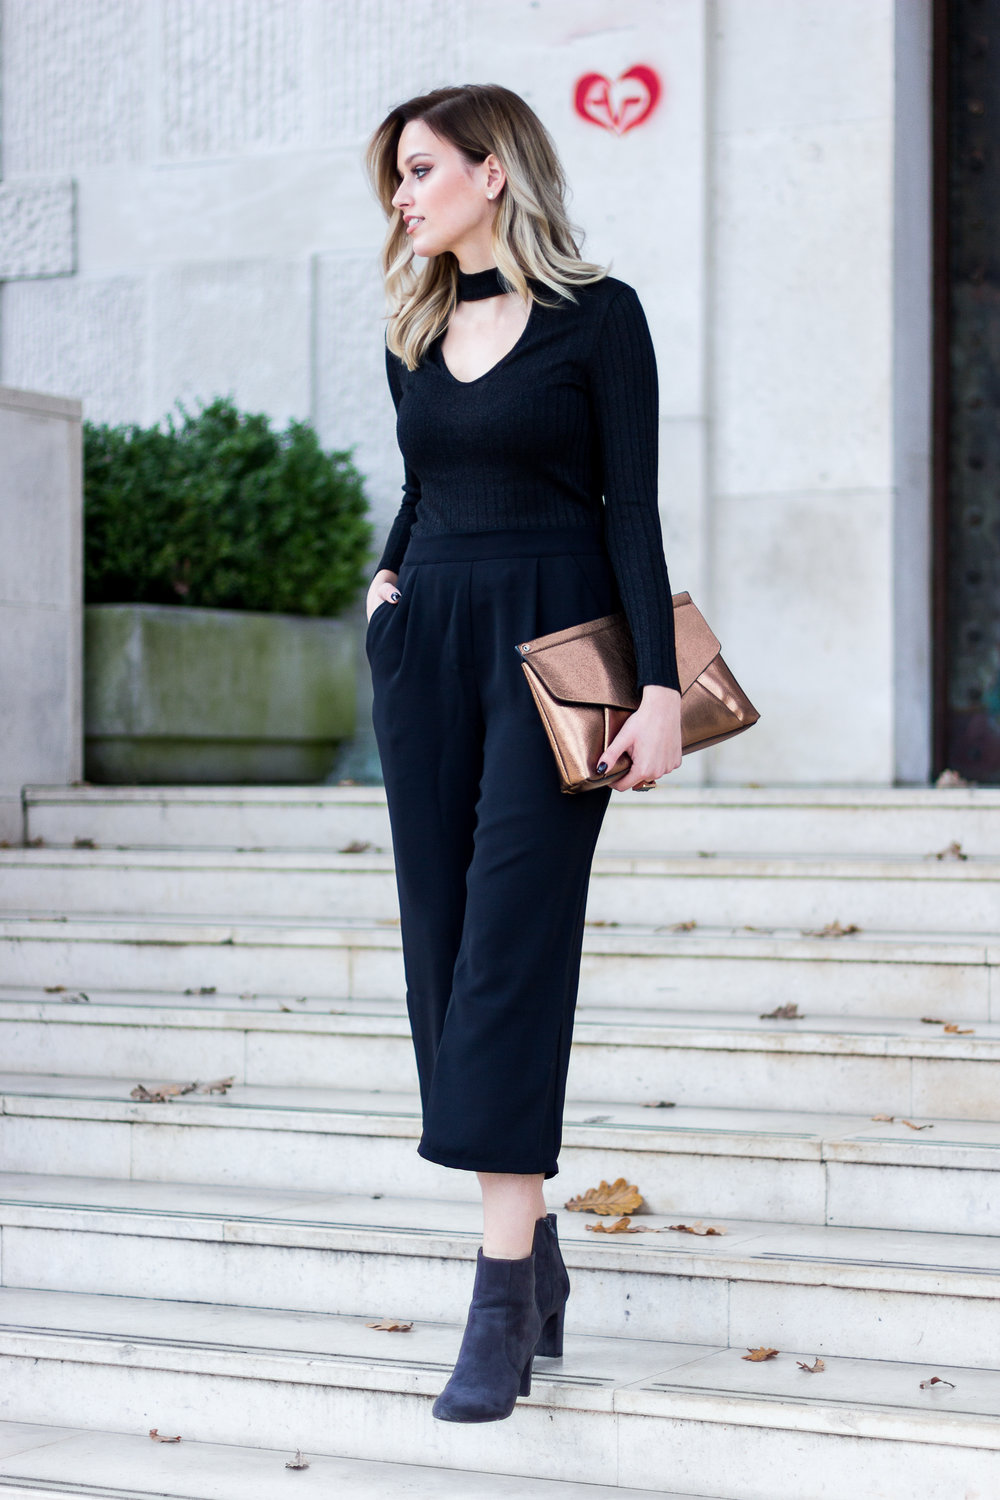 street style mainstream chic